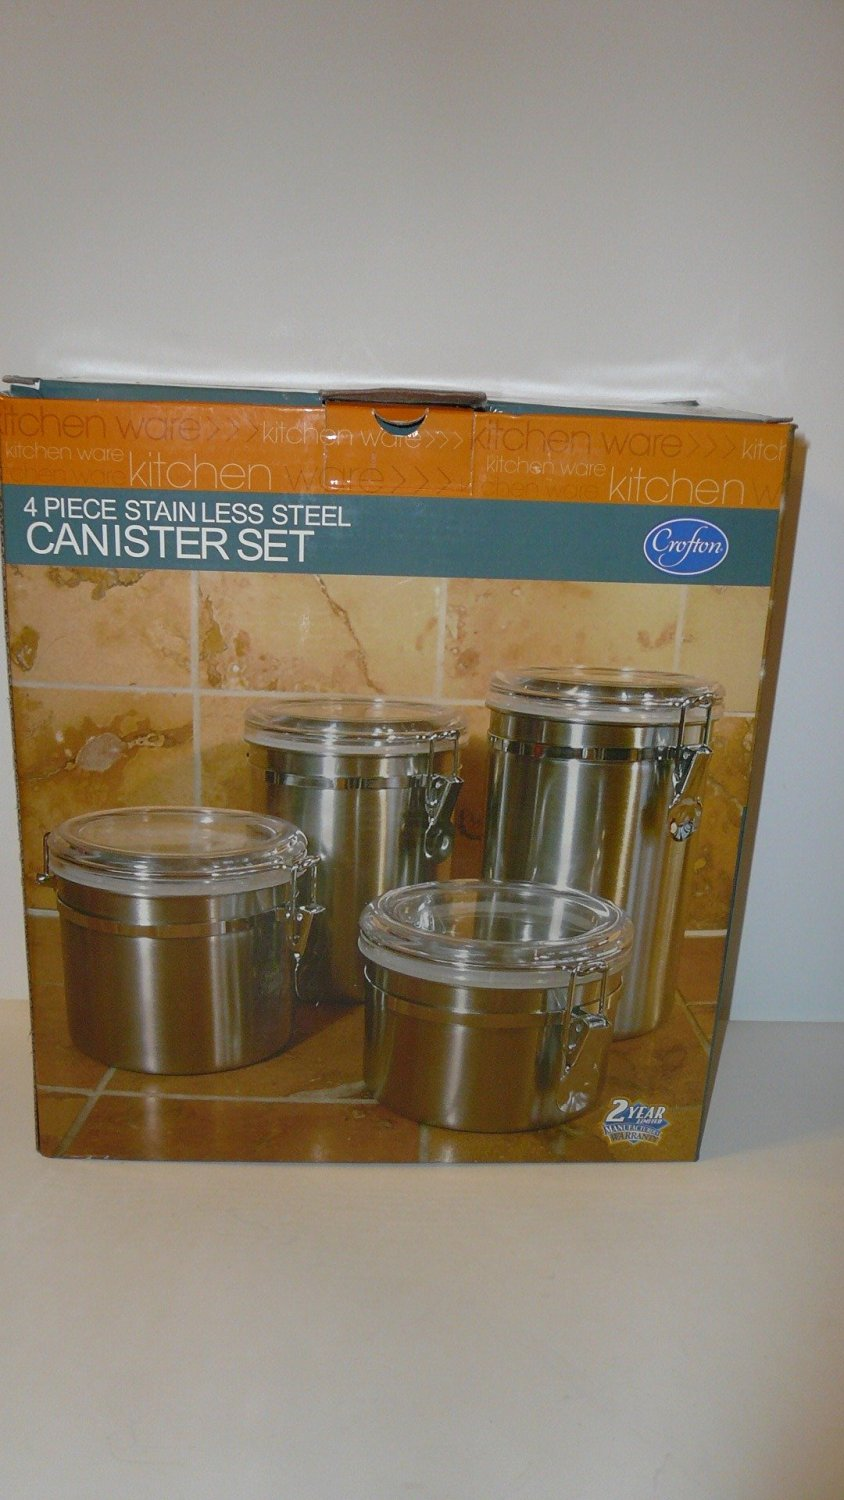 Crofton Stainless Steel 4 Piece Canister Set with See Through Acrylic Lids